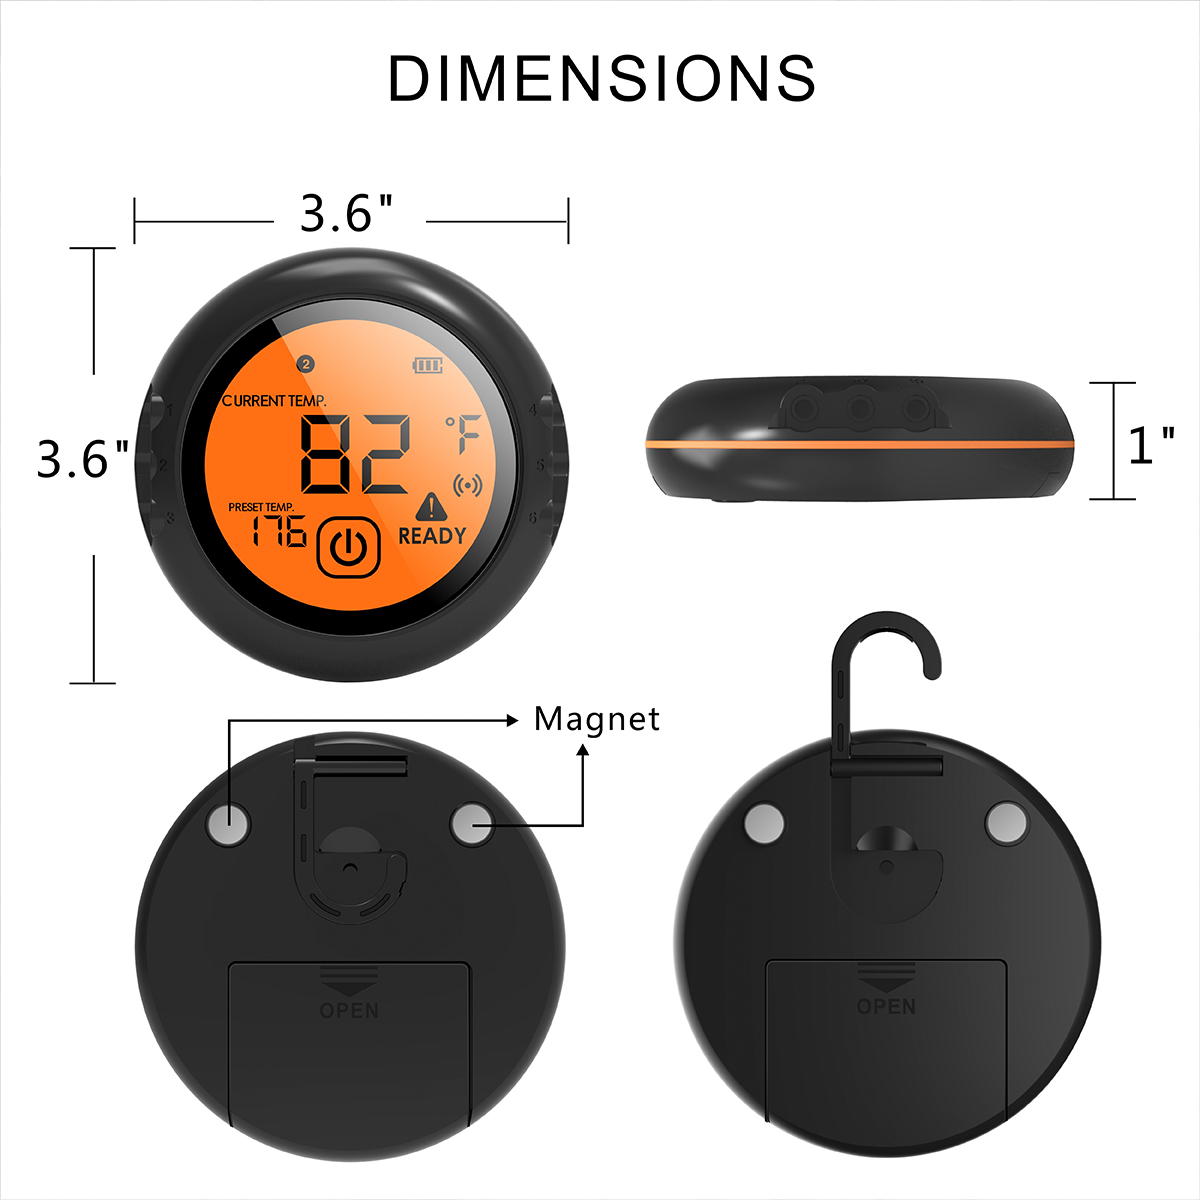 Digital Wireless Food Thermometer with Bluetooth Control and Food Cooking Timer including 6 Probes to Monitor 6 Different Foods 1